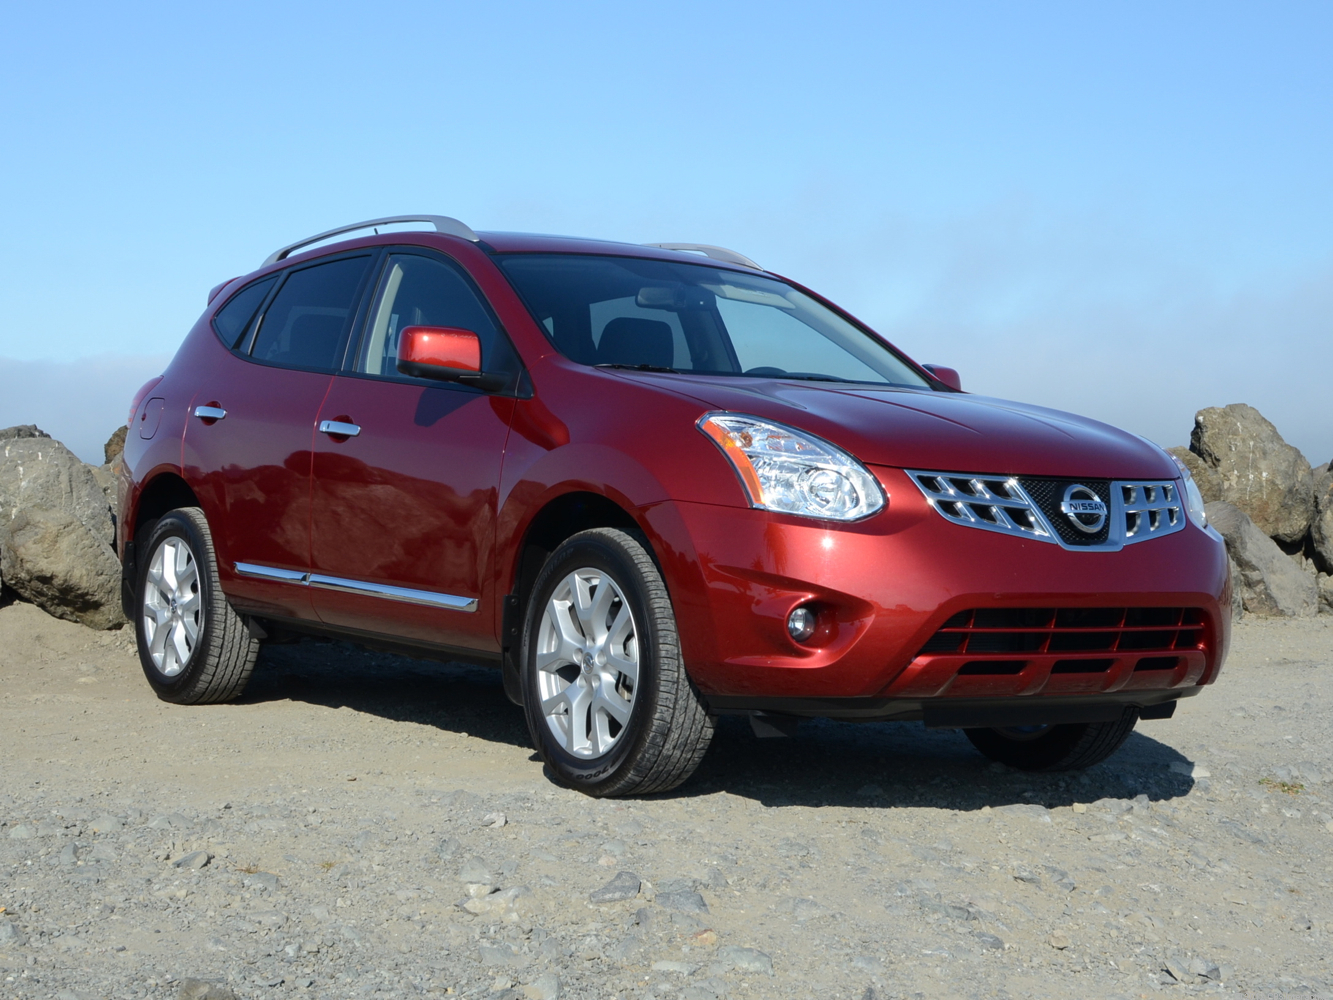 2013 Nissan Rogue FWD 4dr S